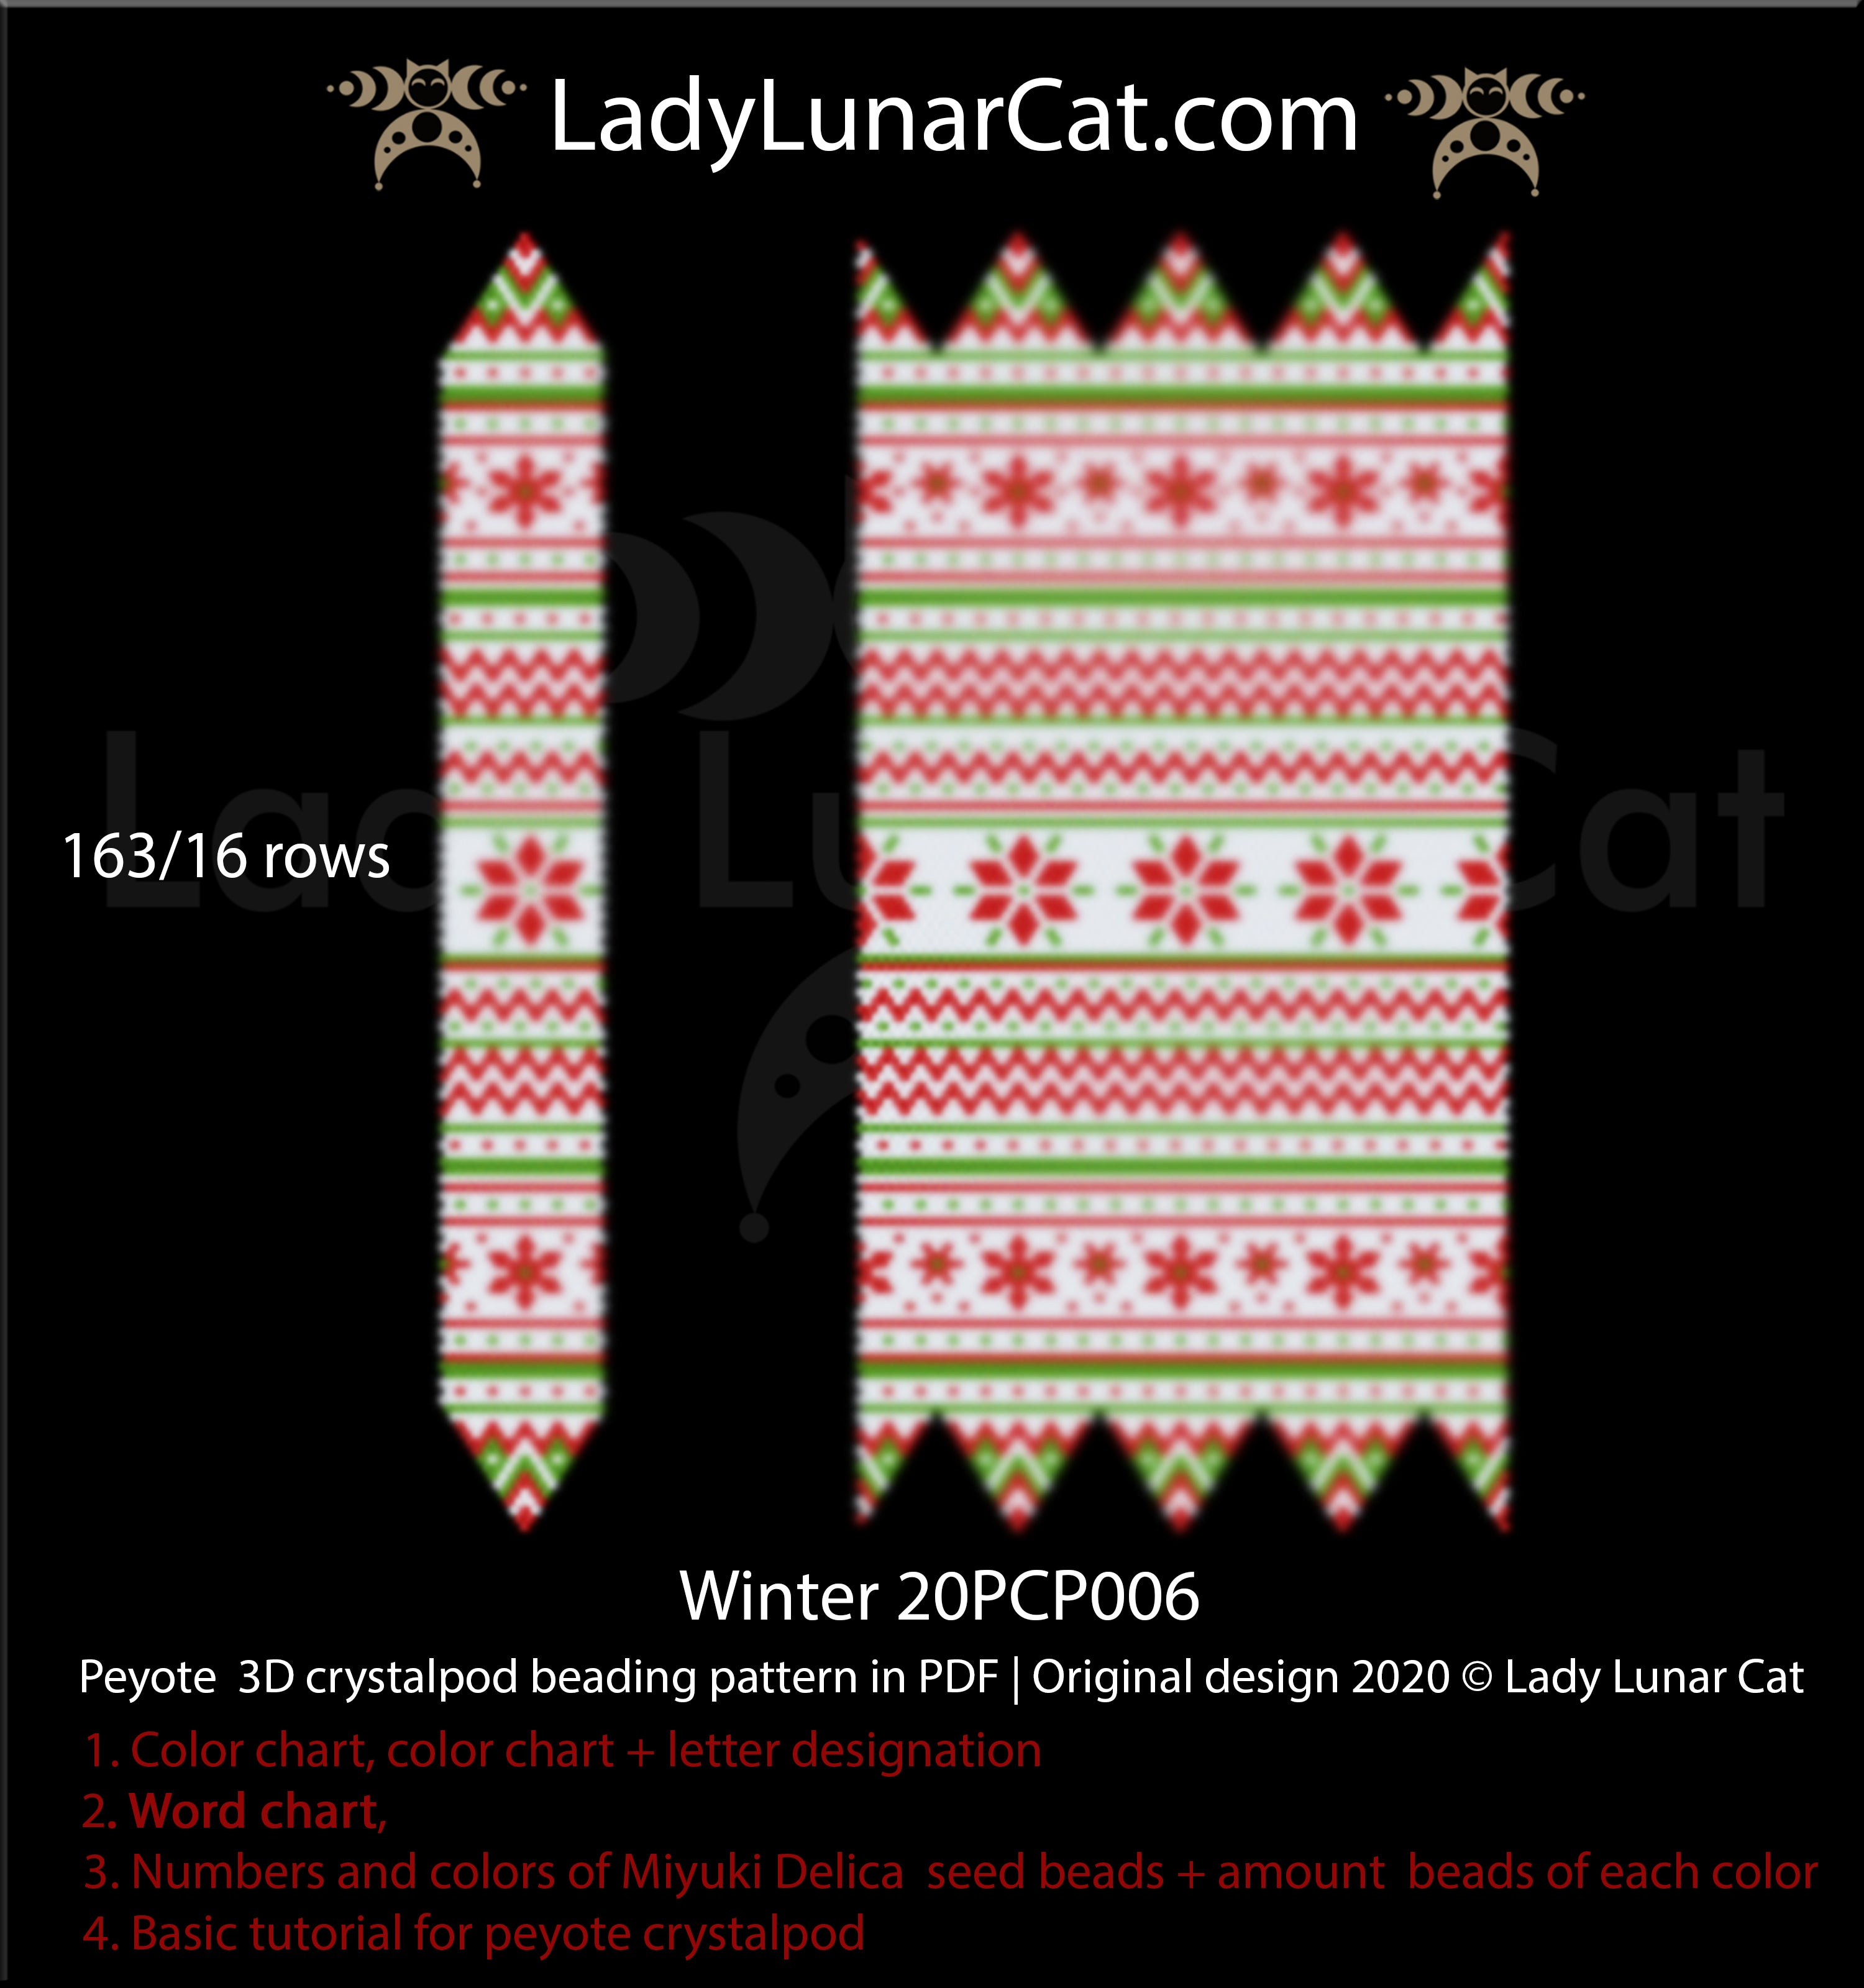 3d peyote pod pattern for beading Winter 20PCP006 by Lady Lunar Cat | Seed beads tutorial for peyote crystalpod patterns